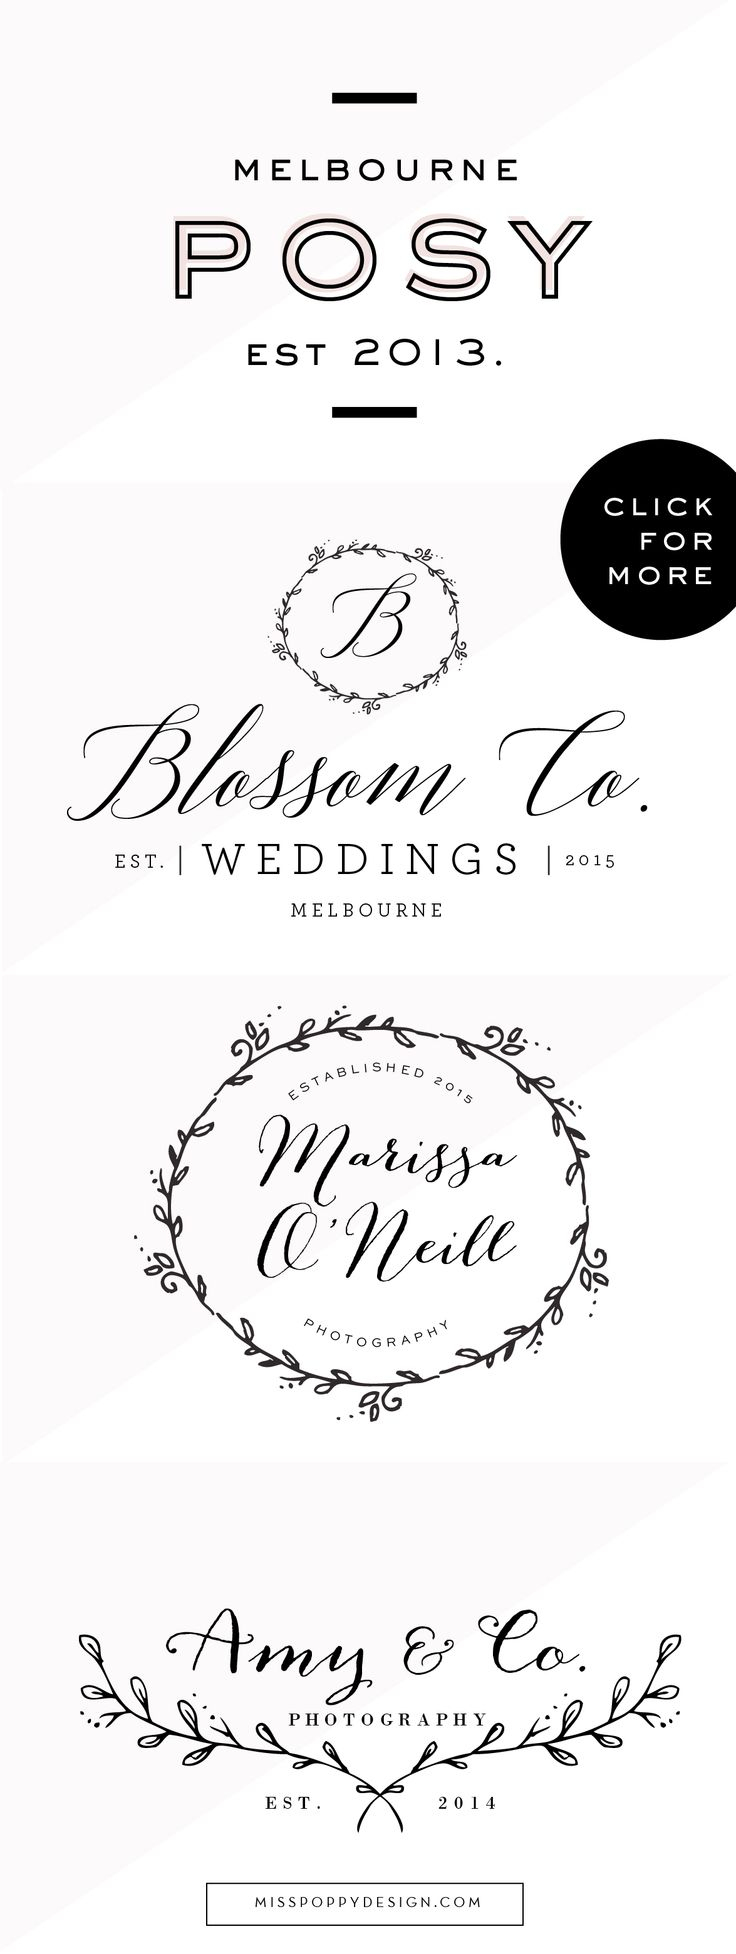 MISS POPPY DESIGN / Logo Collection / Branding / Photographer / Chic / Modern / Pretty / Hand Drawn / Calligraphy / Floral